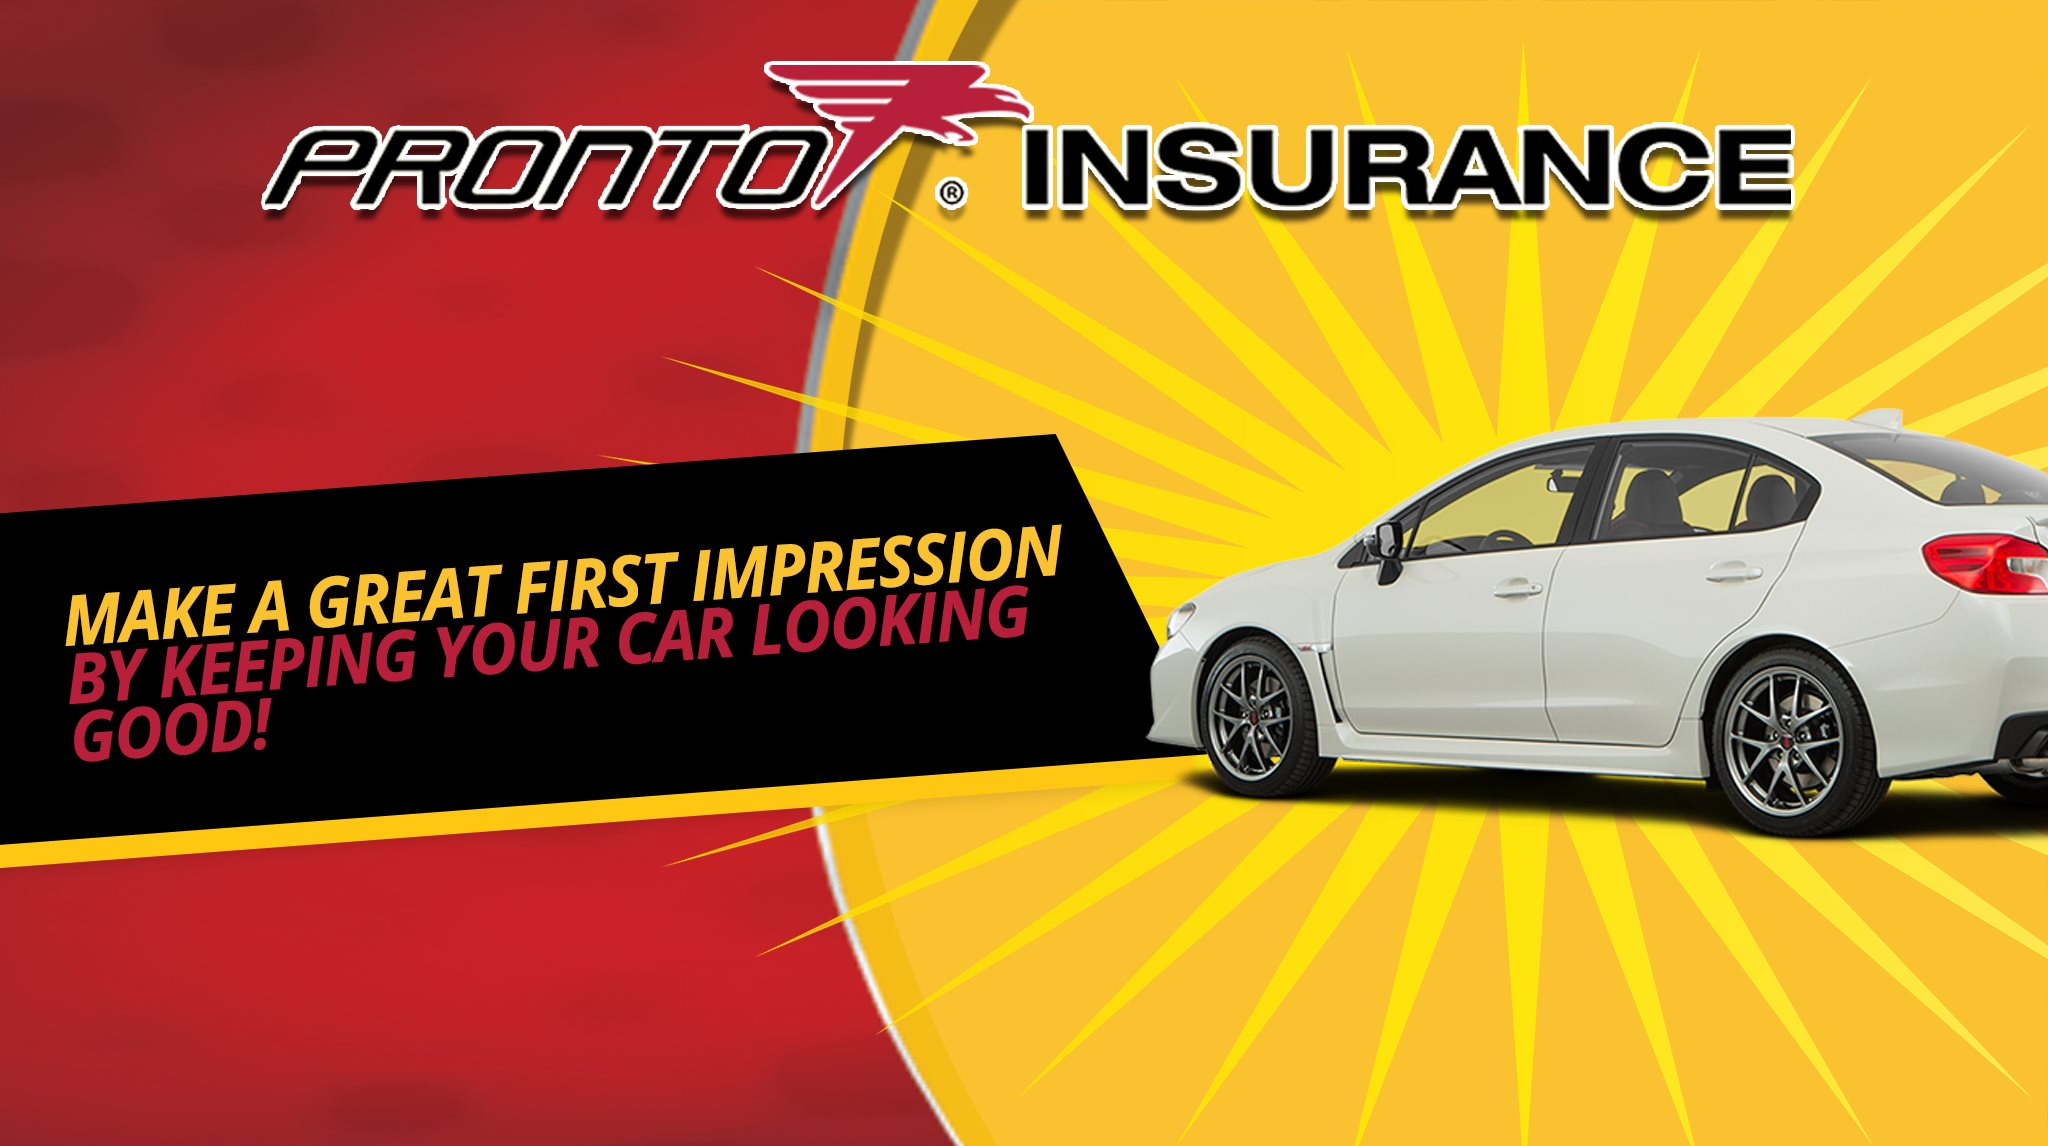 Make a Great First Impression by Keeping Your Car Looking Good!